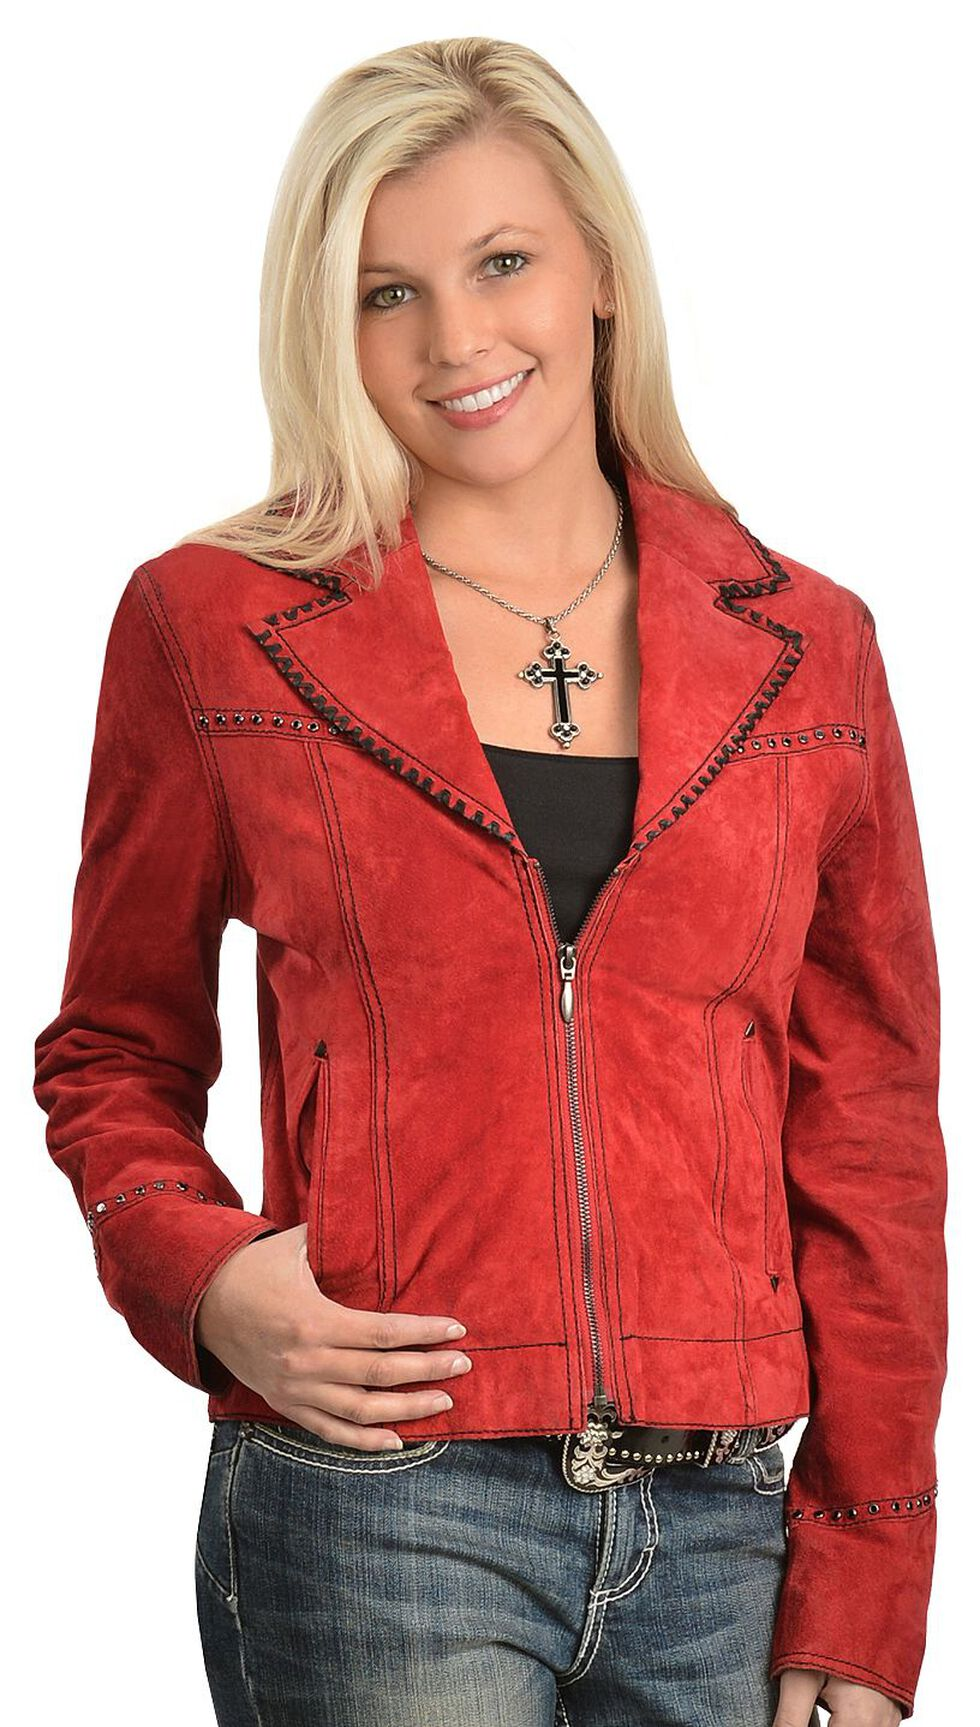 Cripple Creek Red Leather Jacket, Red, hi-res